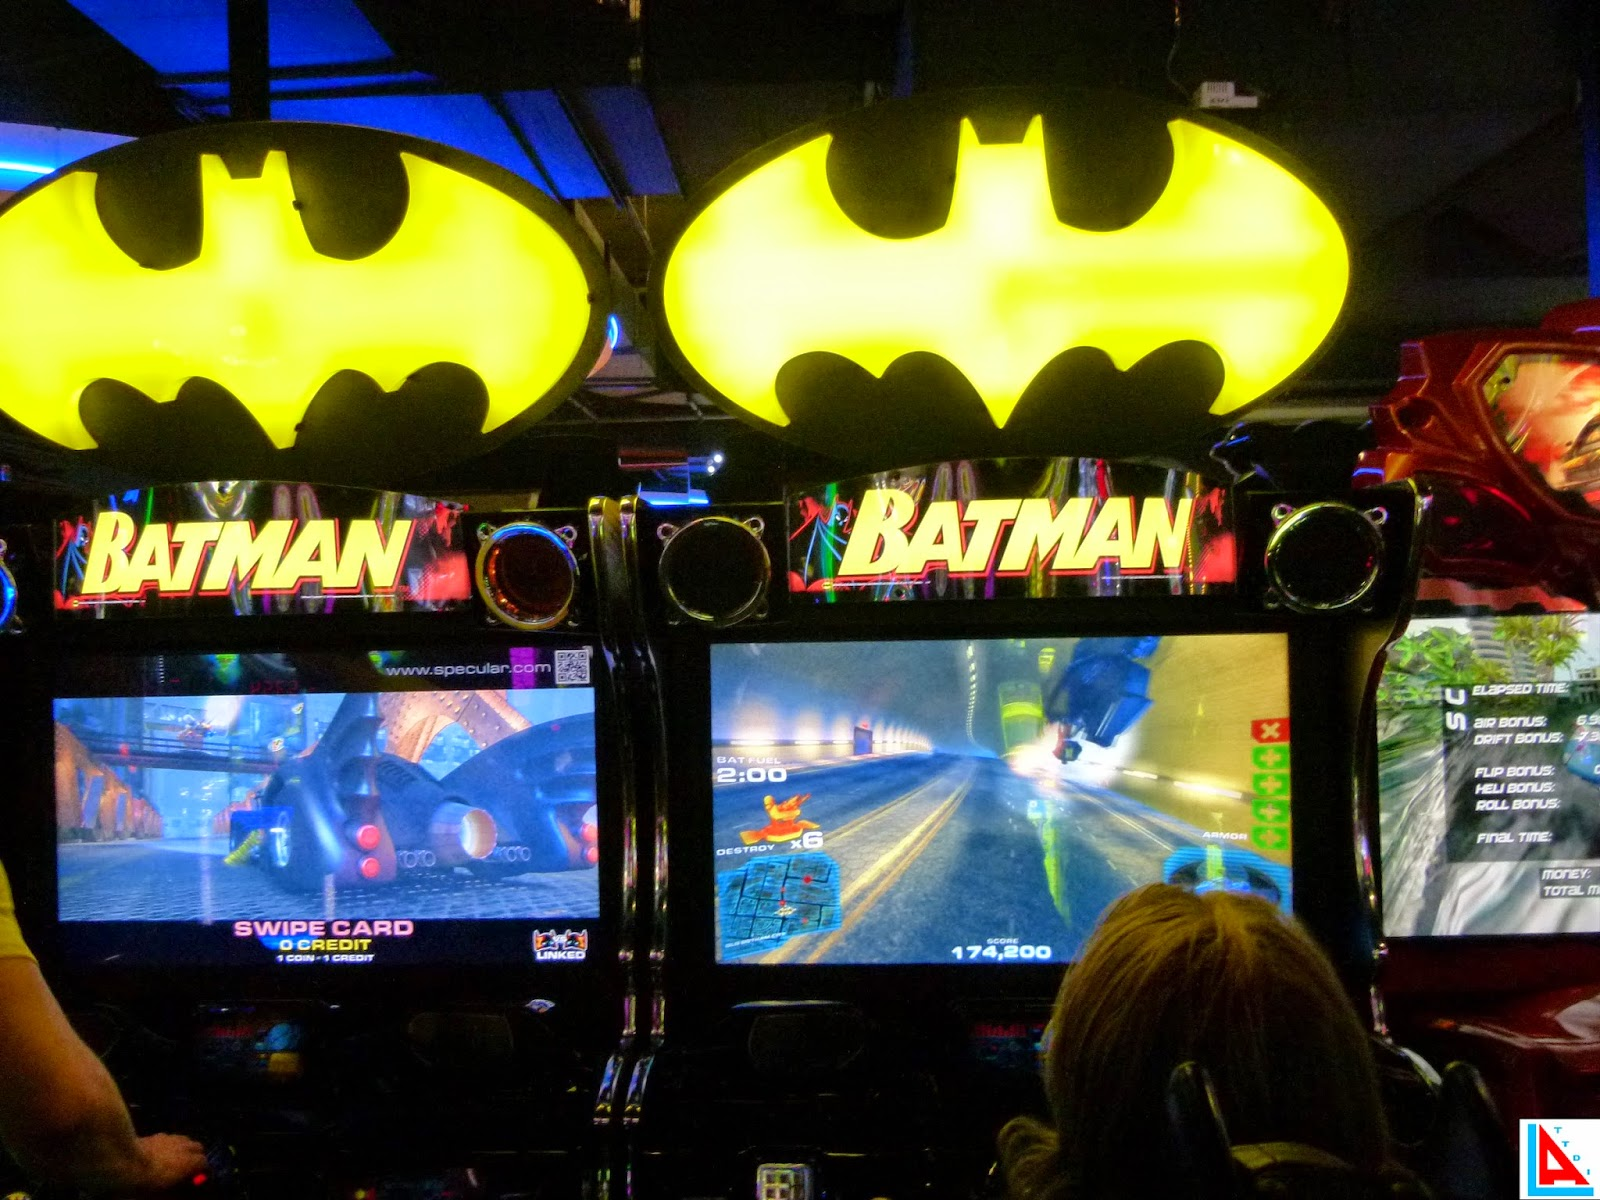 Dave and busters printable coupons january 2013 - One Of The Best Is Namco S Pac Man Smash A Take On Air Hockey The Game Gets Crazy As Multiple Tiny Pucks Get Dropped Down At Different Intervals That Can